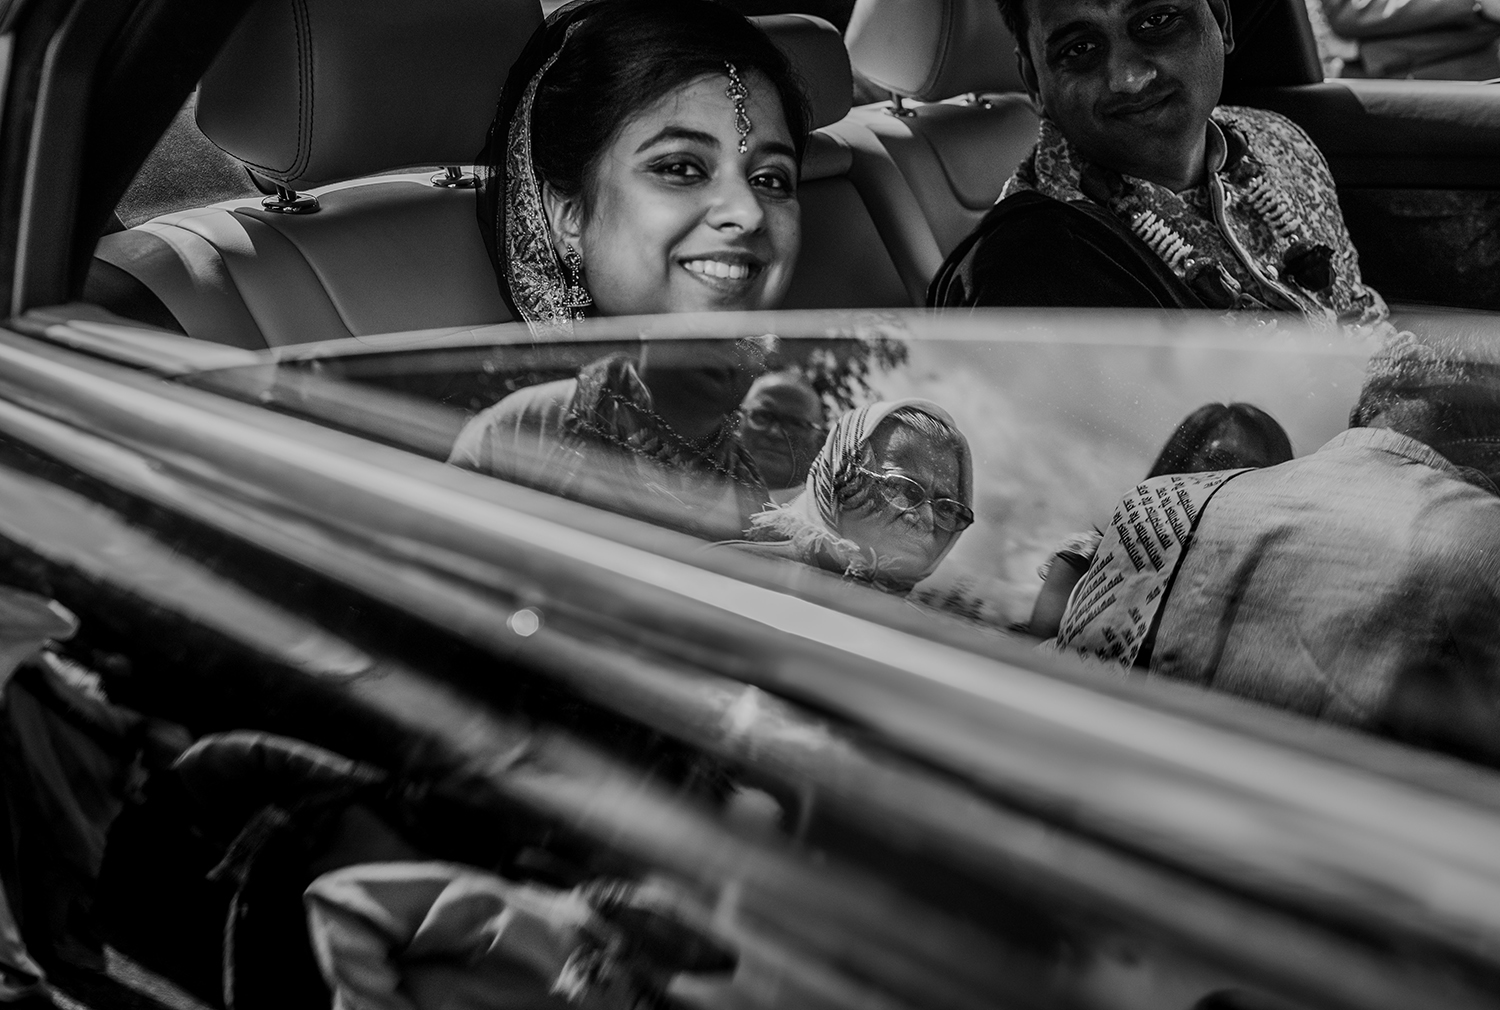 bw photo. Brides grandmother reflecting in the car window